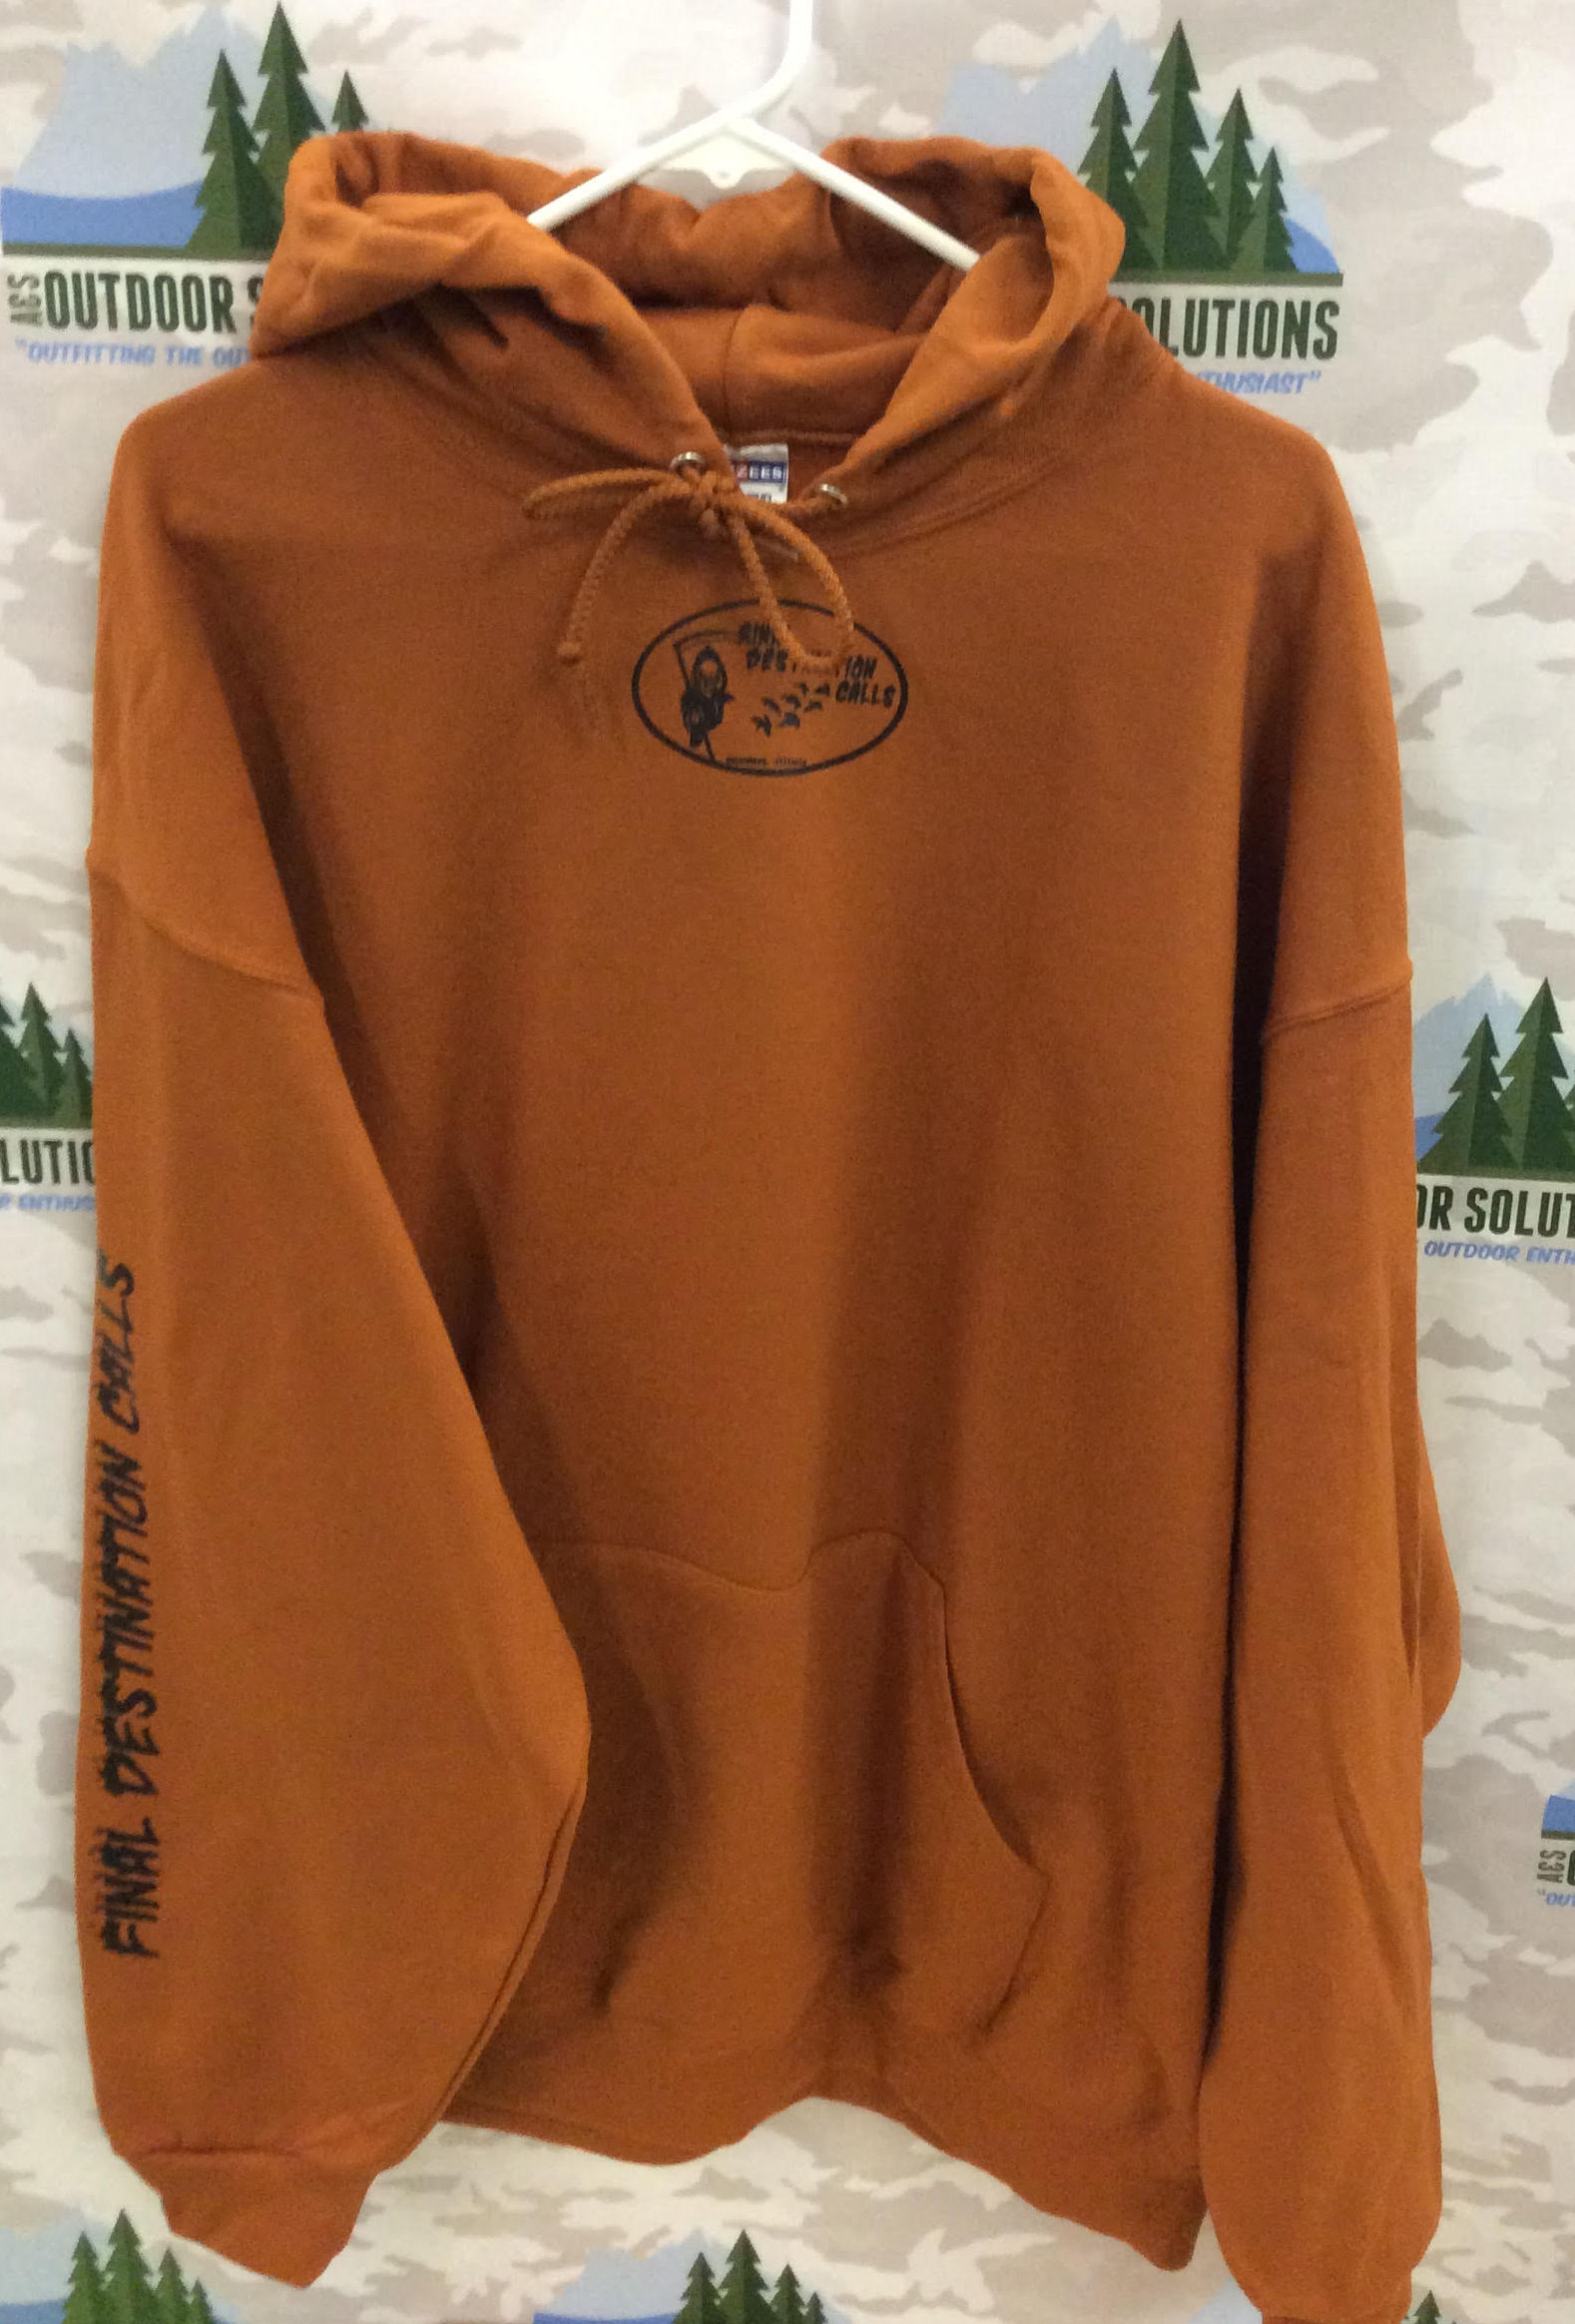 Texas Orange Hooded Sweatshirt with Black Logo from Final Destination Calls